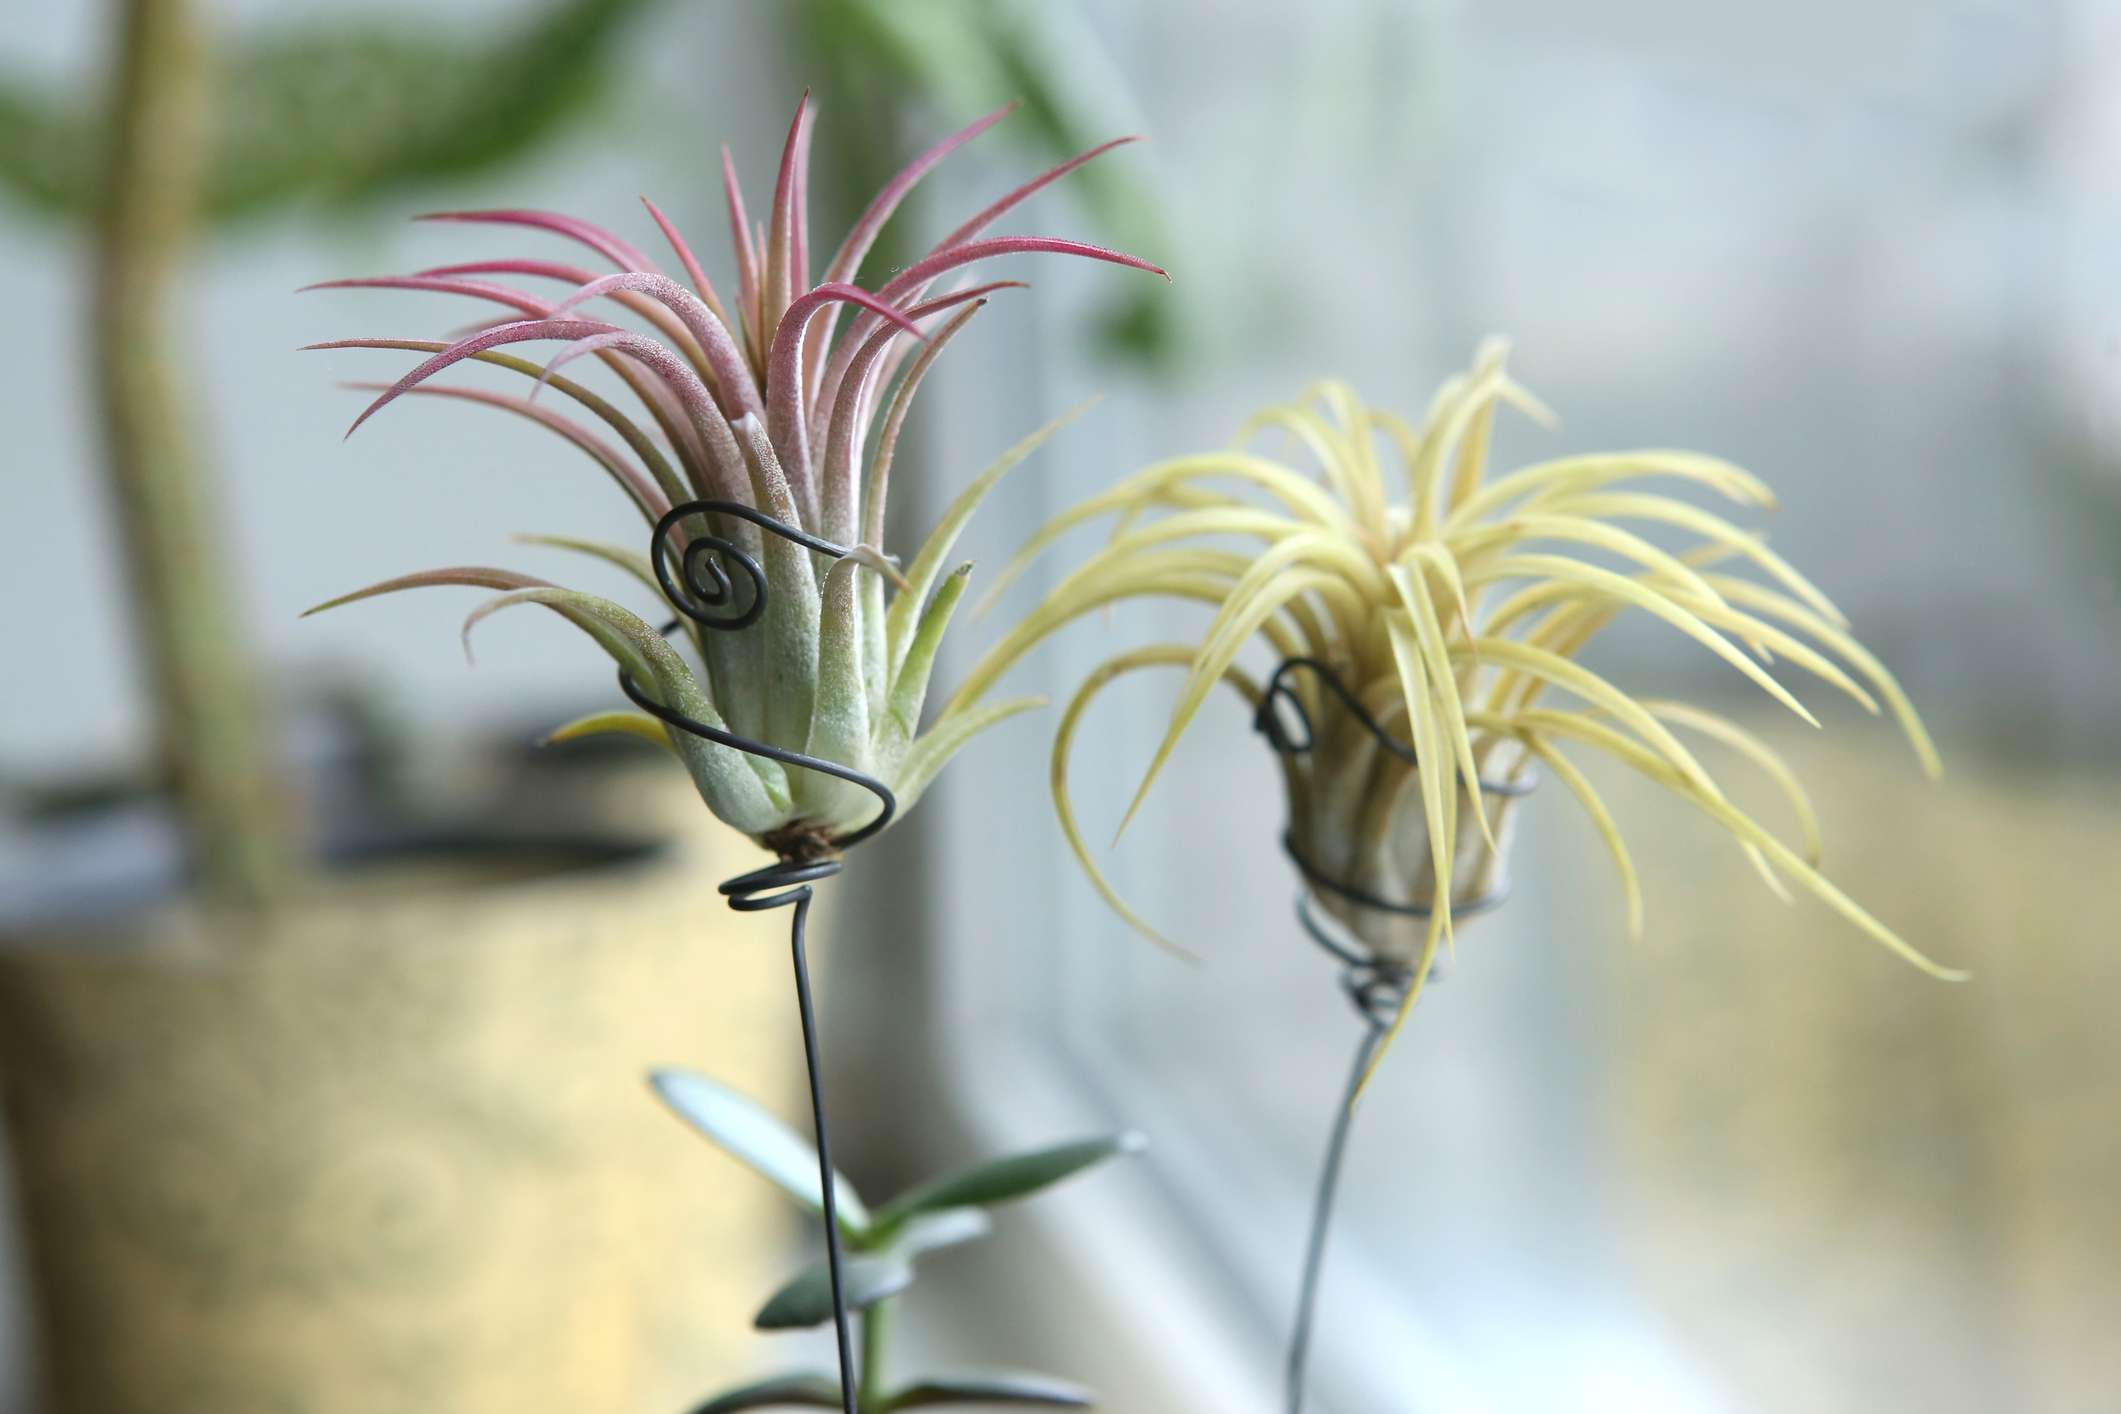 Two airplants with no pots in windowsill